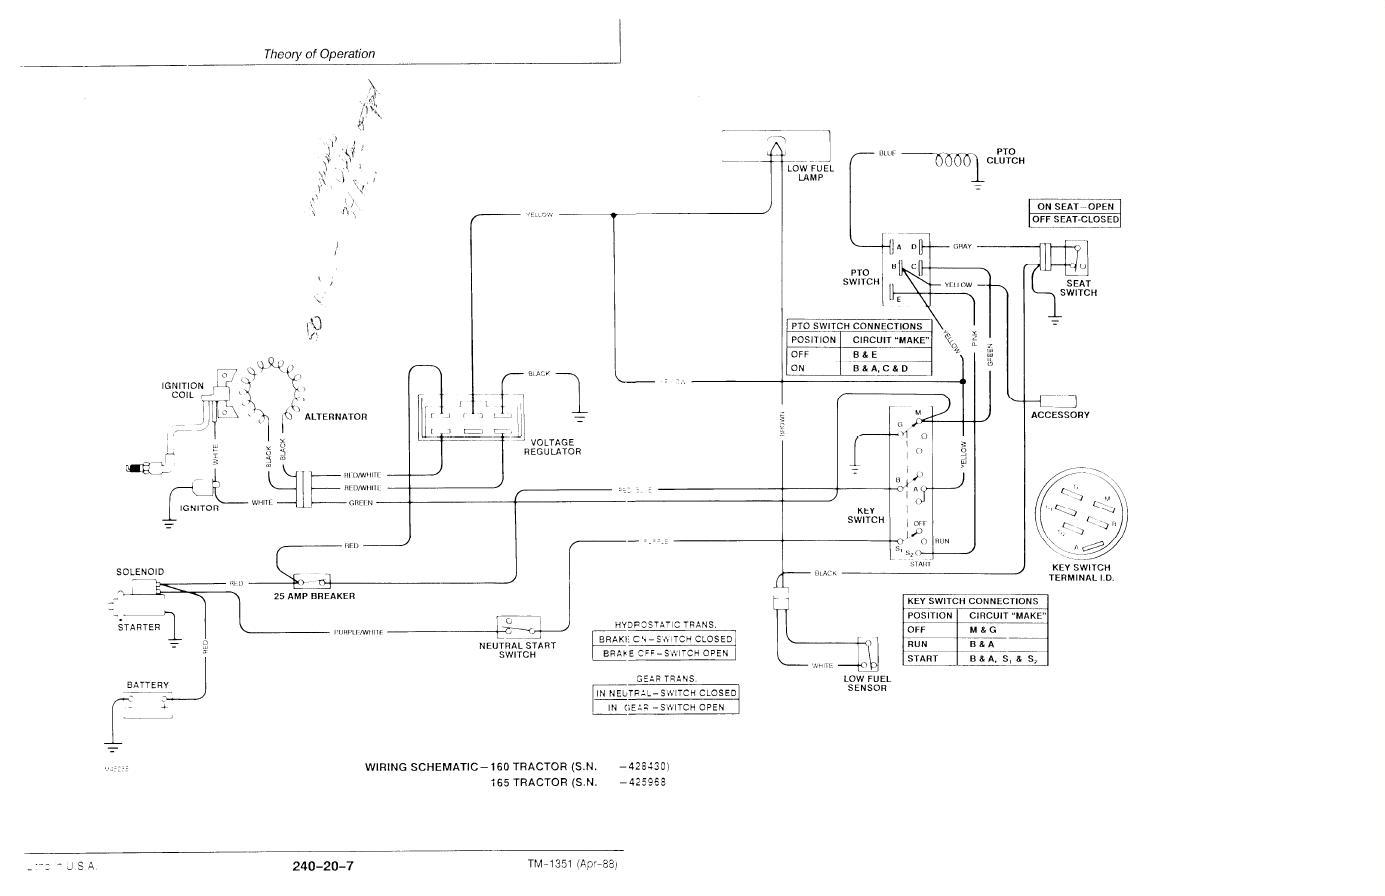 111 Seat Safety Switch Question | My Tractor Forum John Deere Wiring Diagram on john deere generator wiring diagram, john deere 50 wiring diagram, john deere 185 wiring diagram, john deere 48 mower deck, john deere 650 wiring diagram, john deere wiring schematic, john deere 212 diagram, john deere wiring harness diagram, john deere solenoid wiring diagram, john deere gx85 wiring diagram, john deere mower wiring diagram, john deere ignition wiring diagram, john deere radio wiring diagram, john deere a wiring diagram, john deere 120 wiring diagram, john deere 180 wiring diagram, john deere 1020 wiring diagram, john deere 5103 wiring diagram, john deere 216 wiring diagram, john deere 265 wiring diagram,